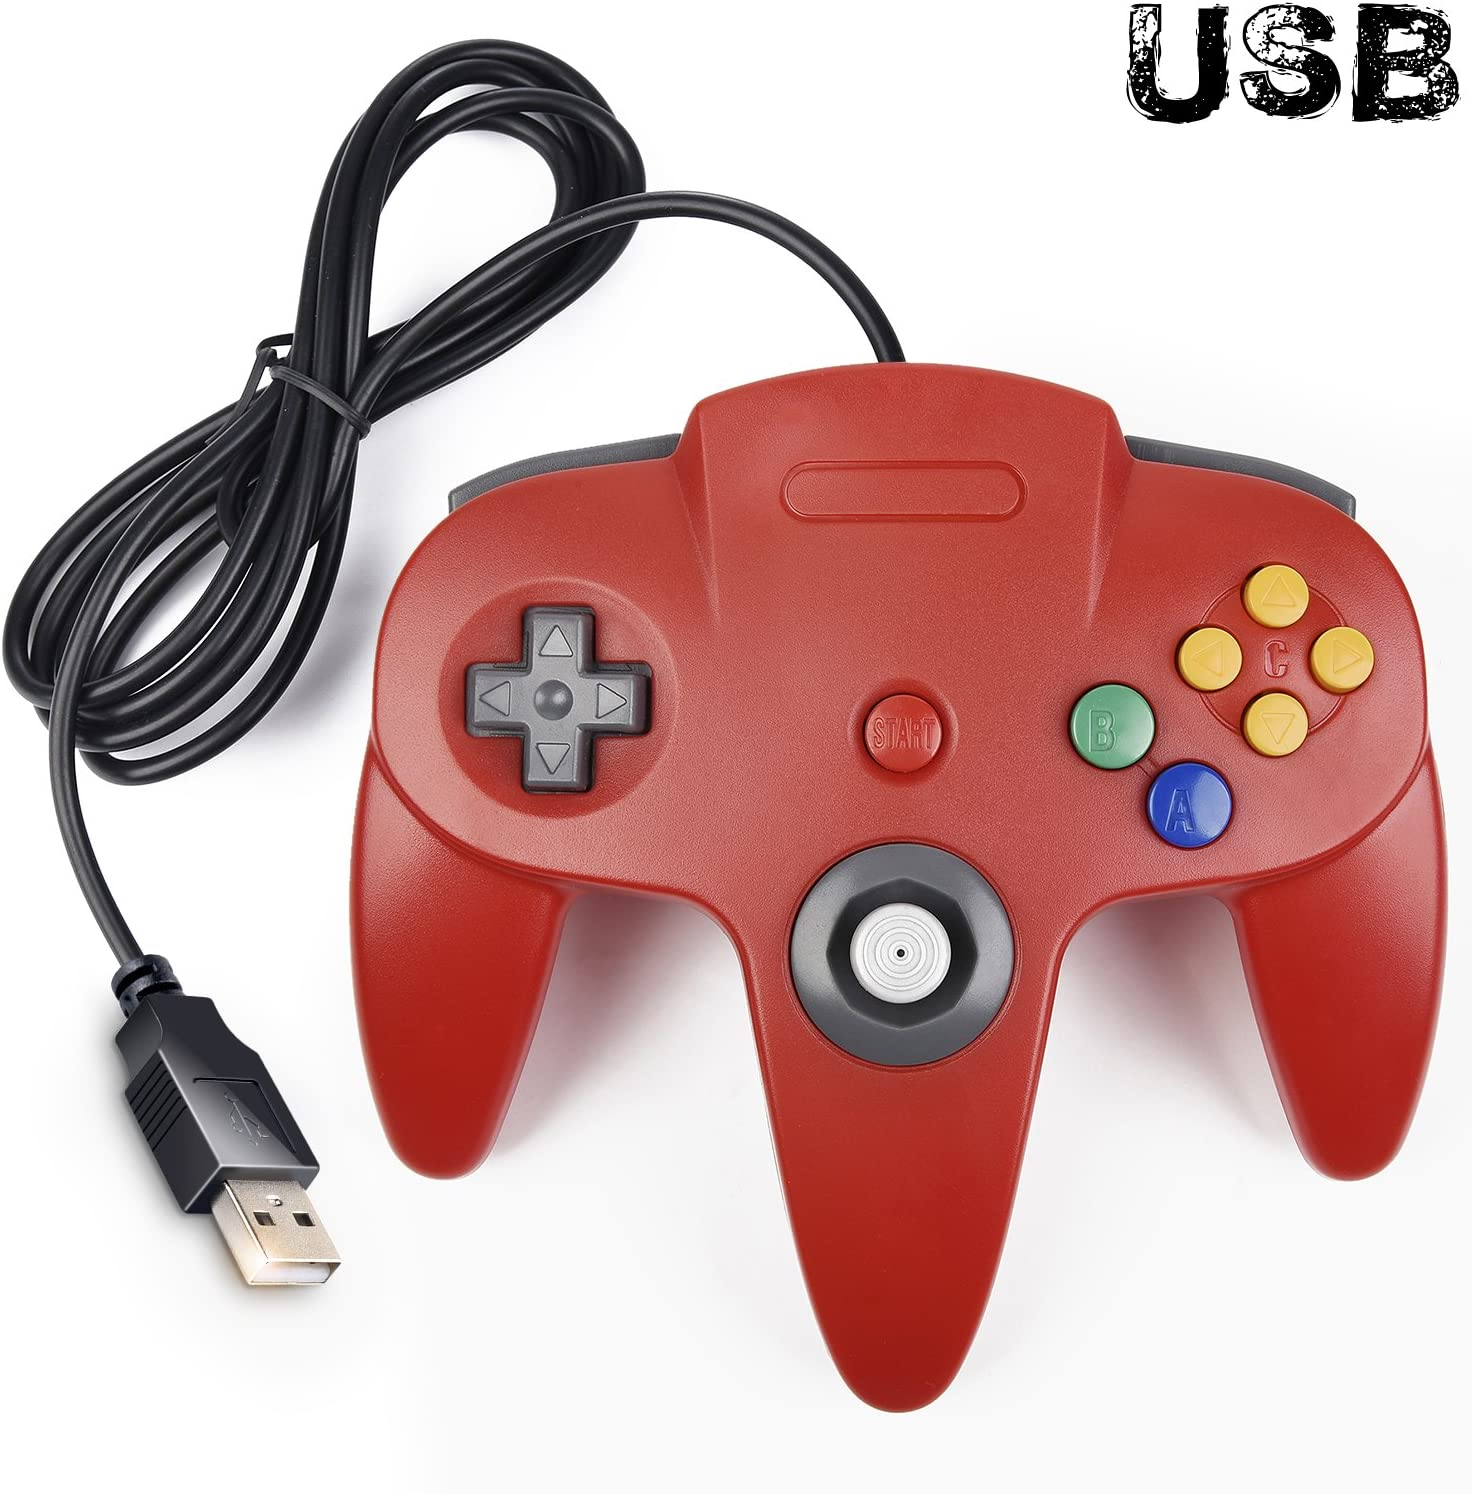 SAFFUN Classic Retro N64 Bit USB Wired Controller for Windows PC MAC Linux Raspberry Pi 3 (Red)